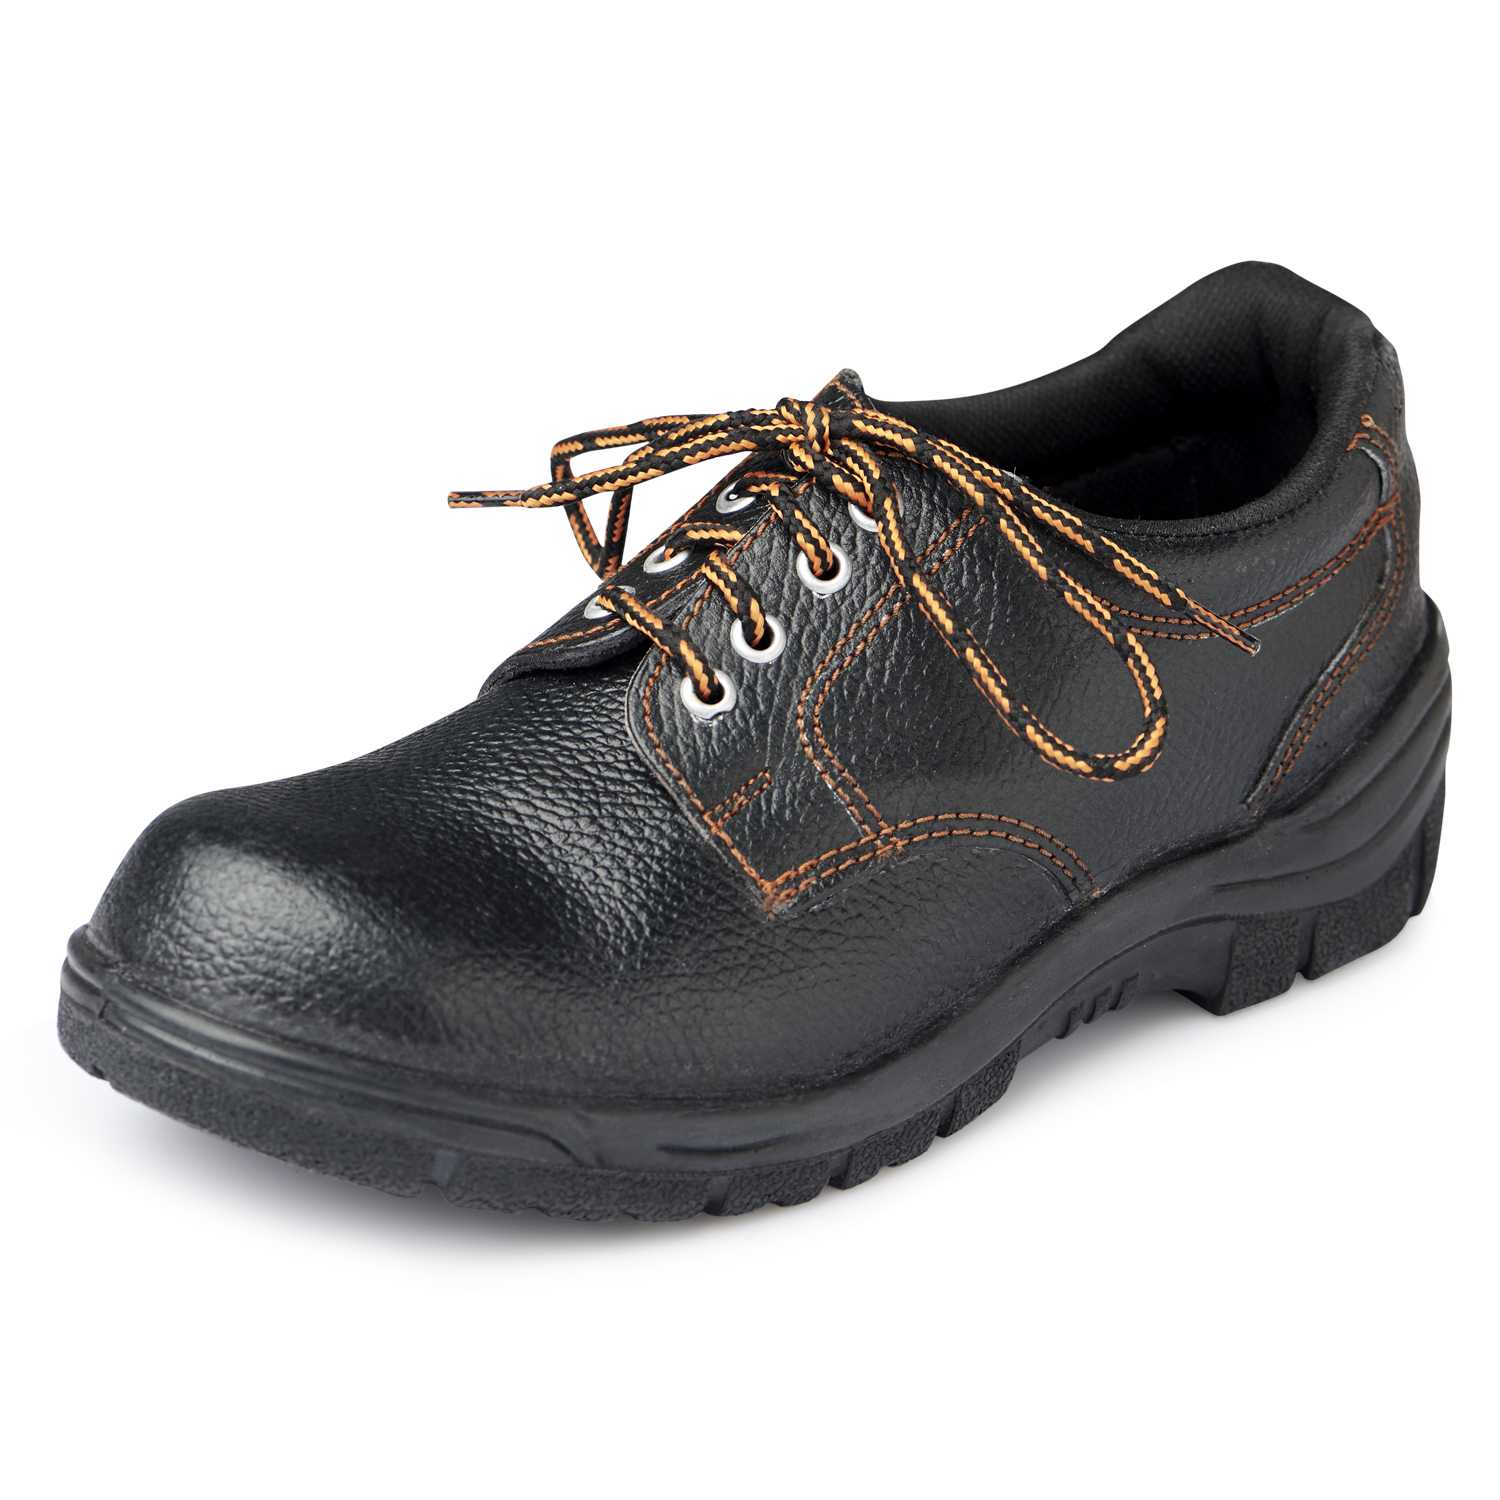 Super Derby ST PU Safety Shoes